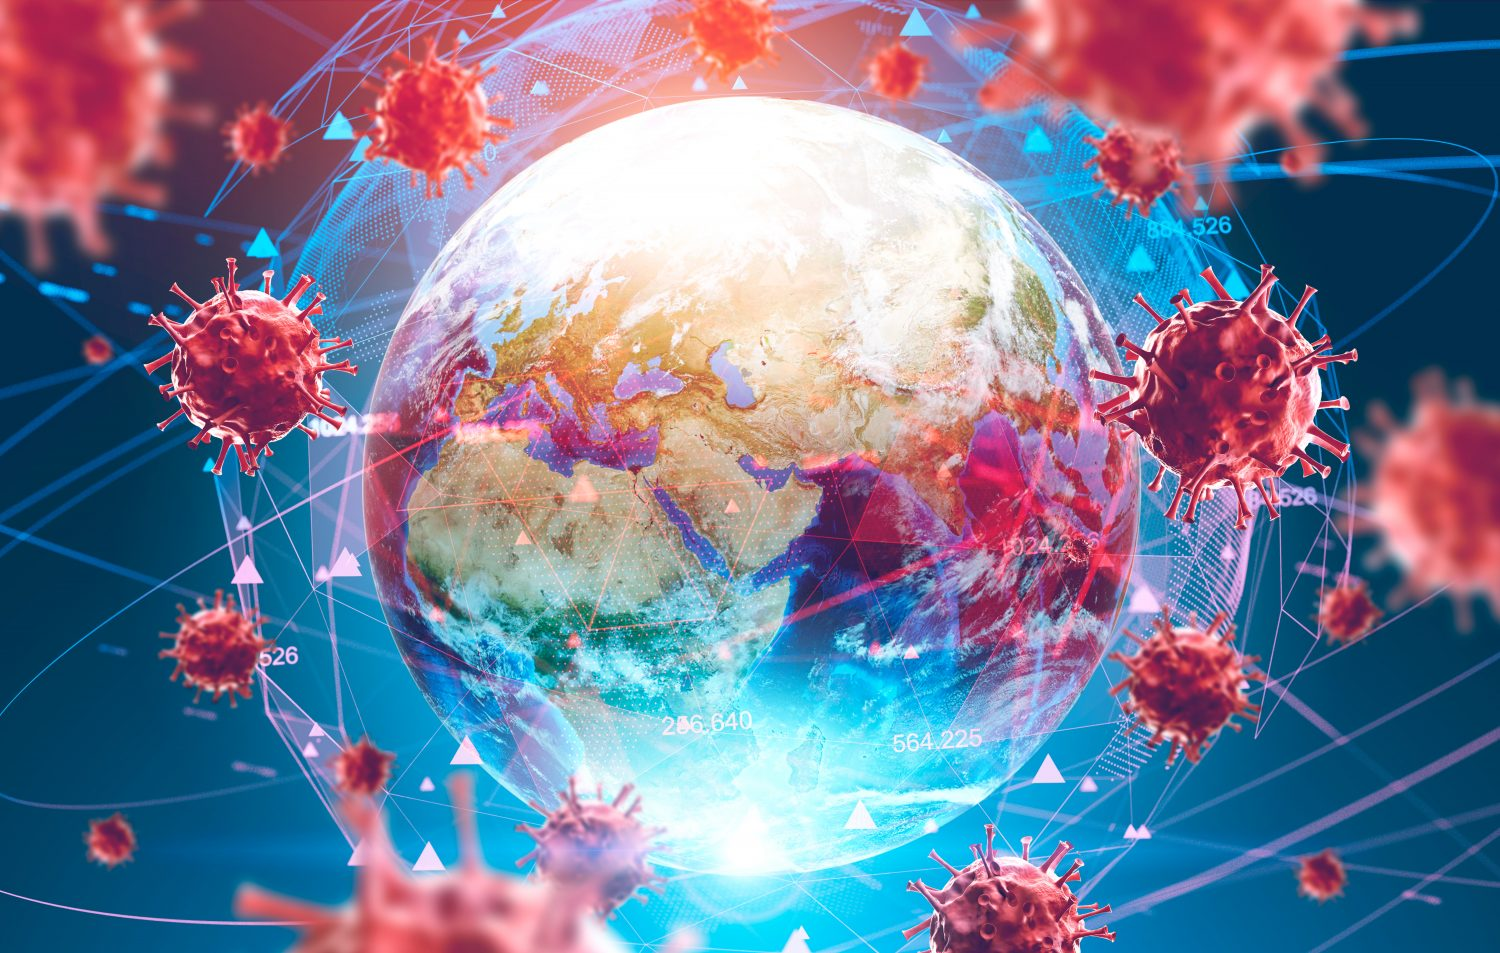 coronavirus impact on markets - Ncov spreading concept, Earth and virus models